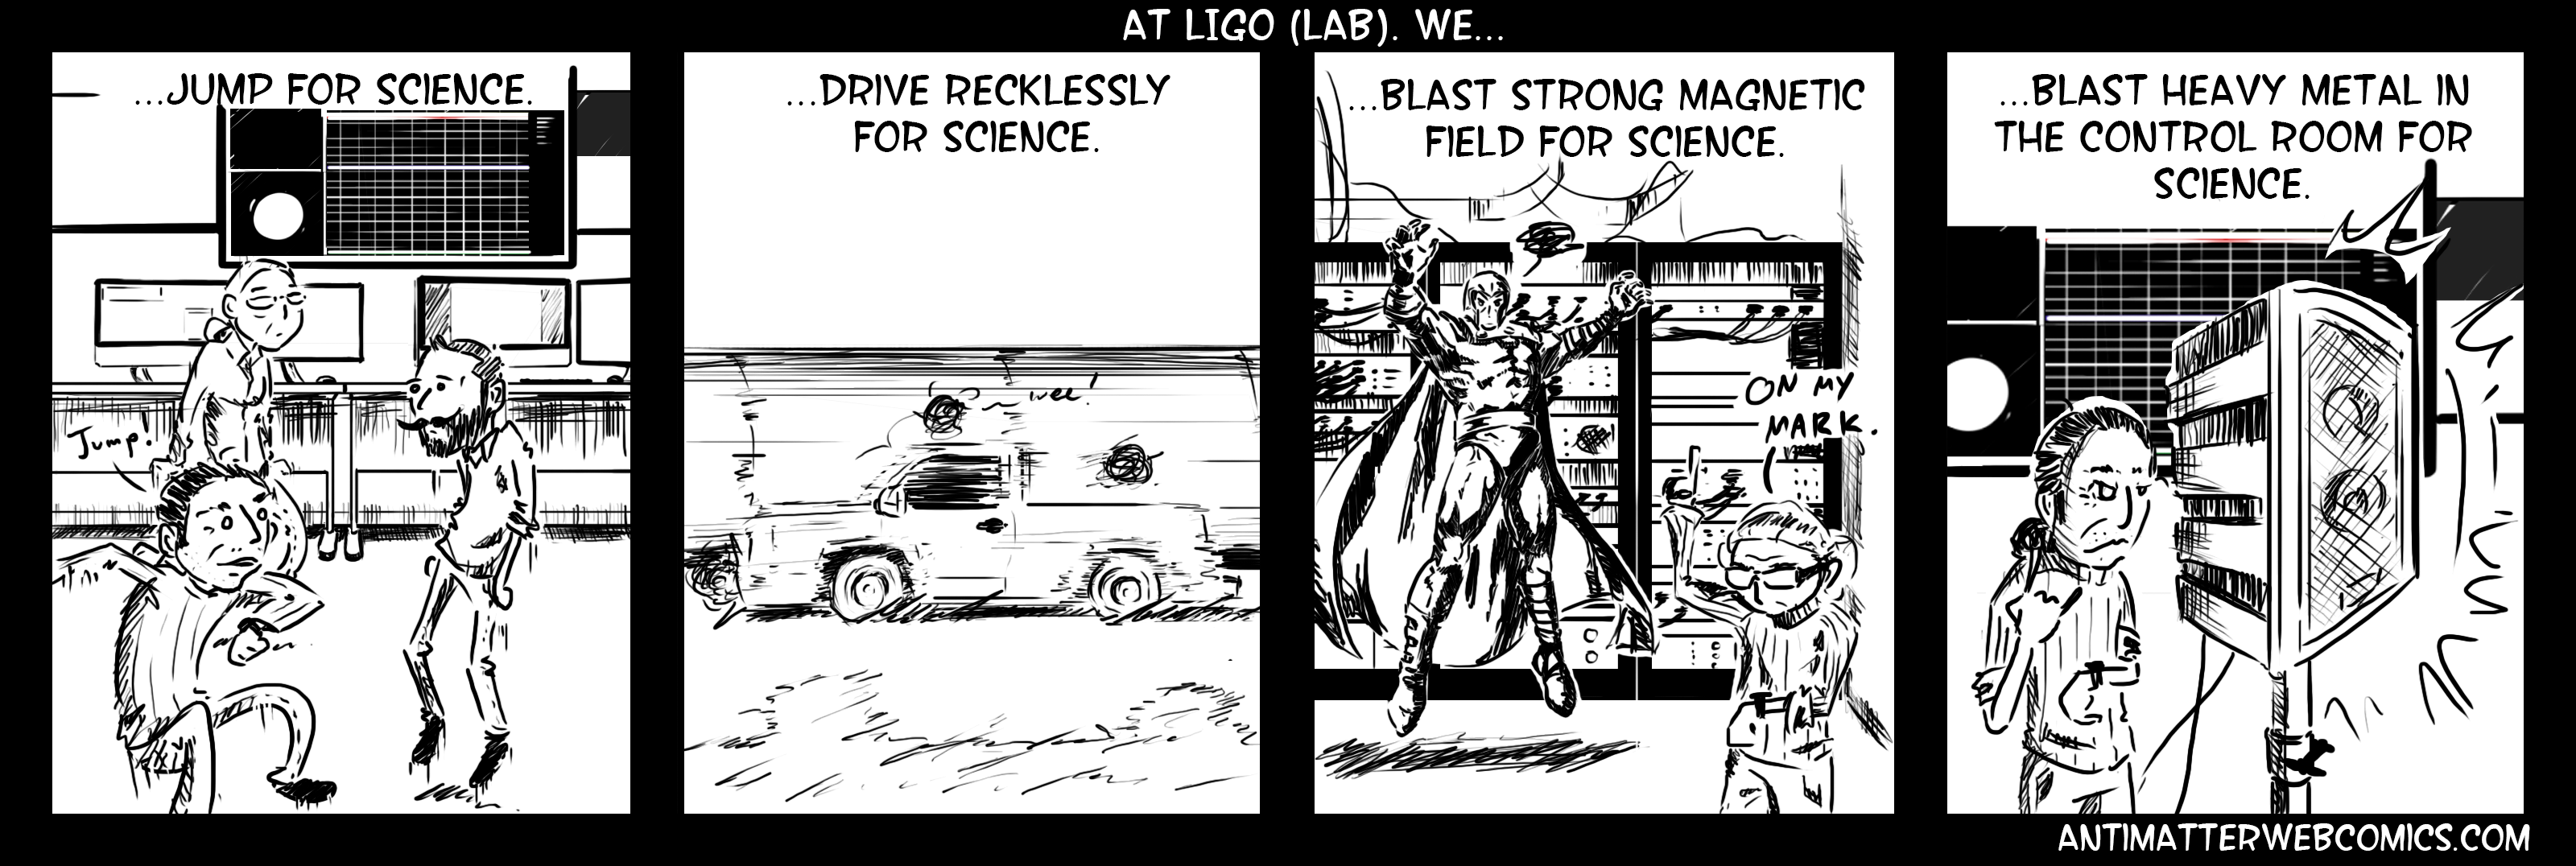 At LIGO we do crazy things for science